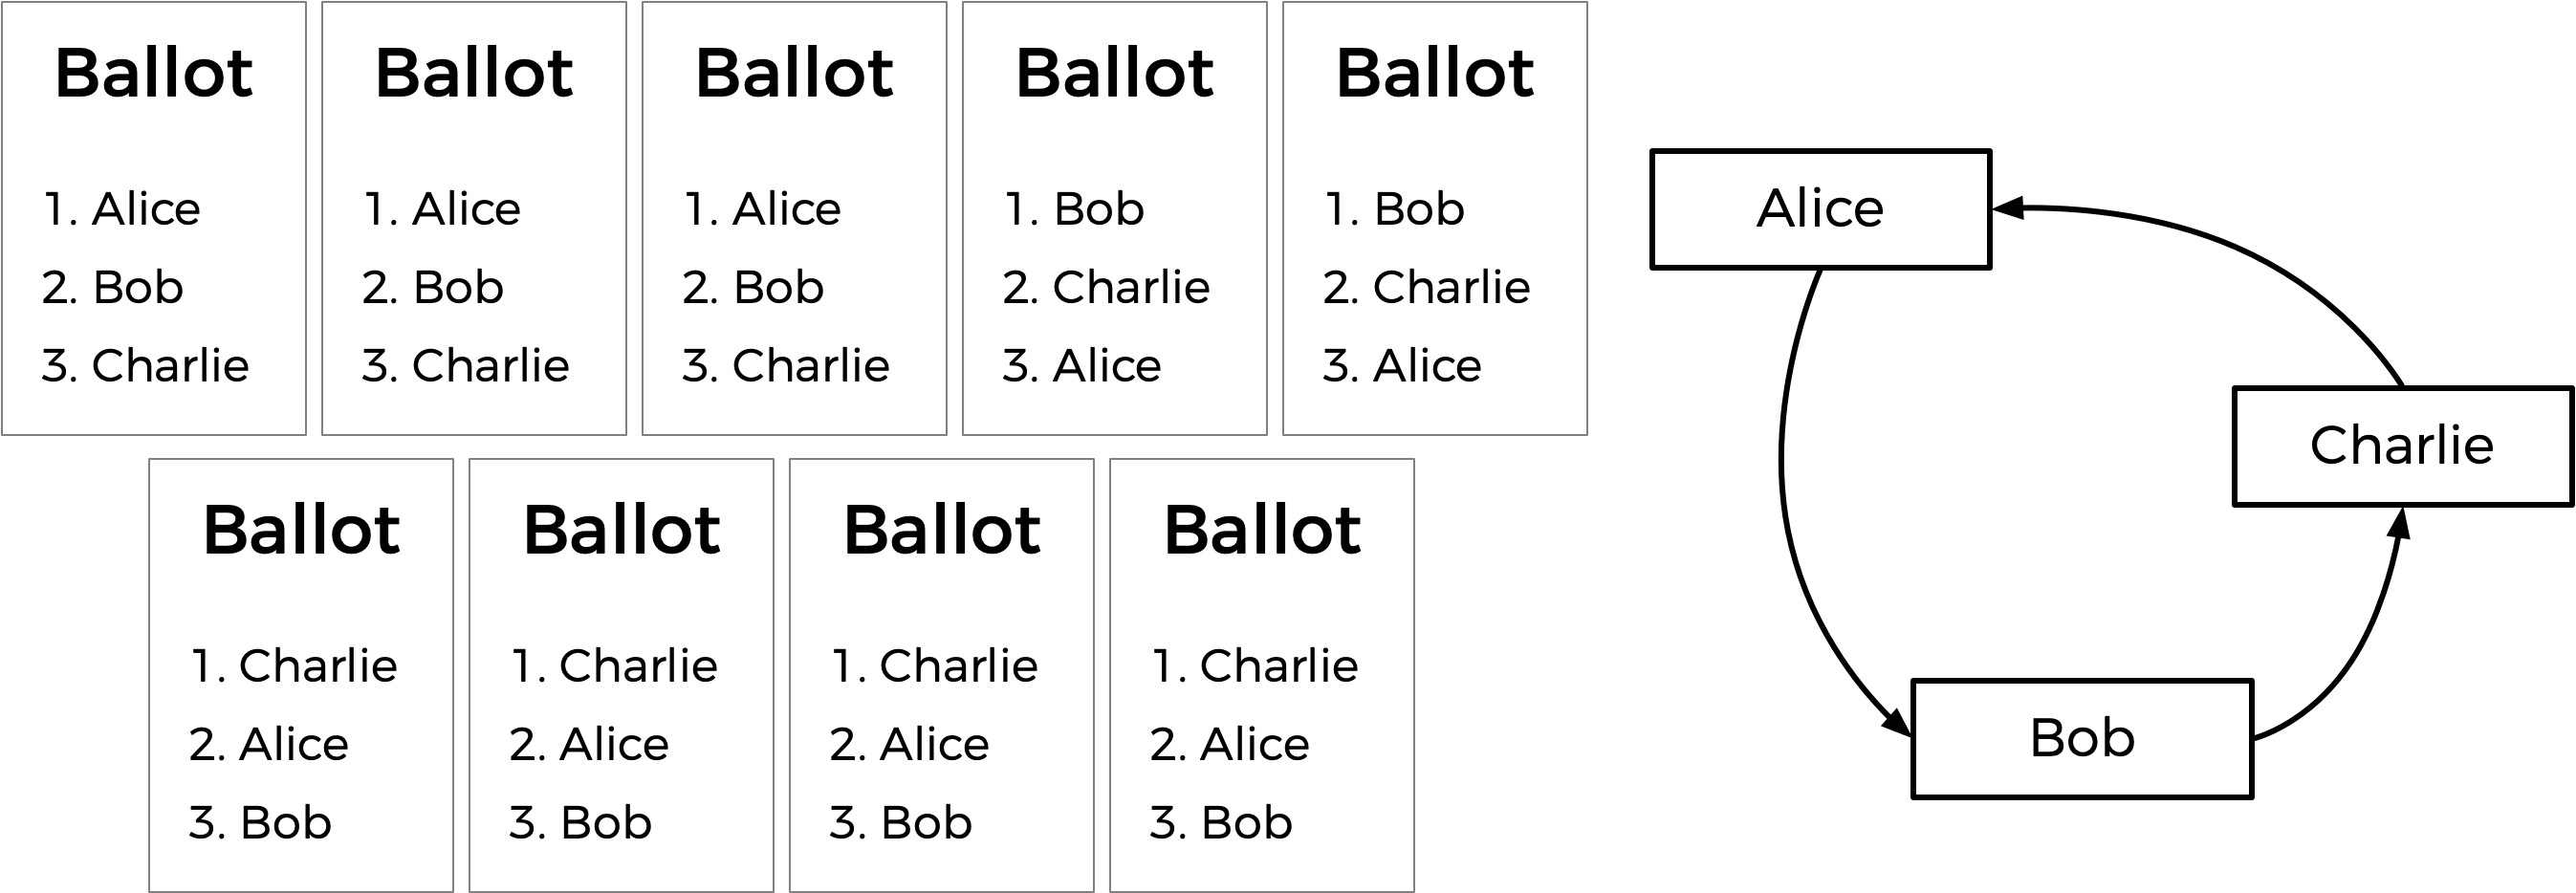 Nine ballots, with ranked preferences